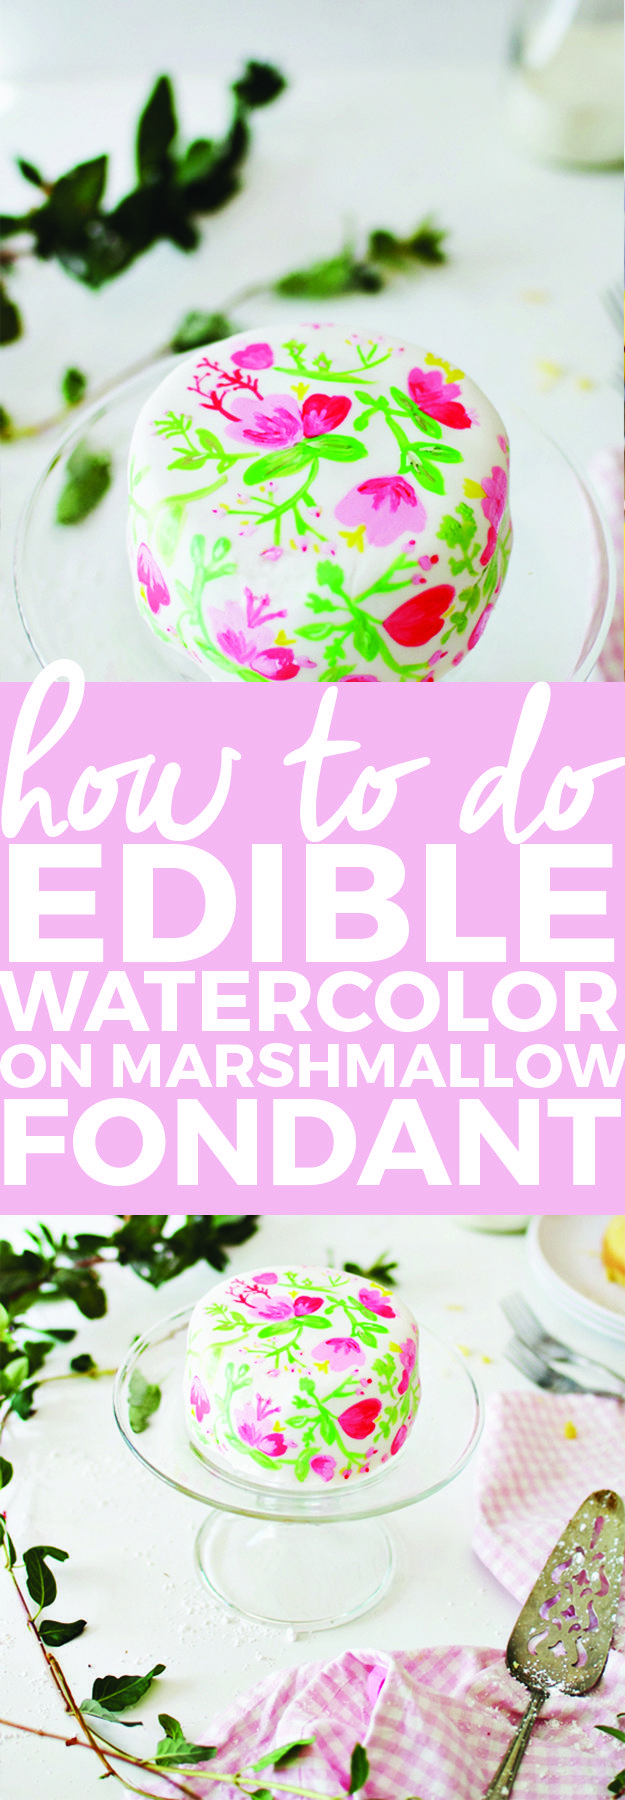 How To Do Edible Watercolor On Marshmallow Fondant | cake decorating tips, how to use edible watercolor, how to paint fondant, decorating cakes, diy cake decorating || The Butter Half  #cakedecorating  #ediblewatercolor #cakedecor  via @thebutterhalf